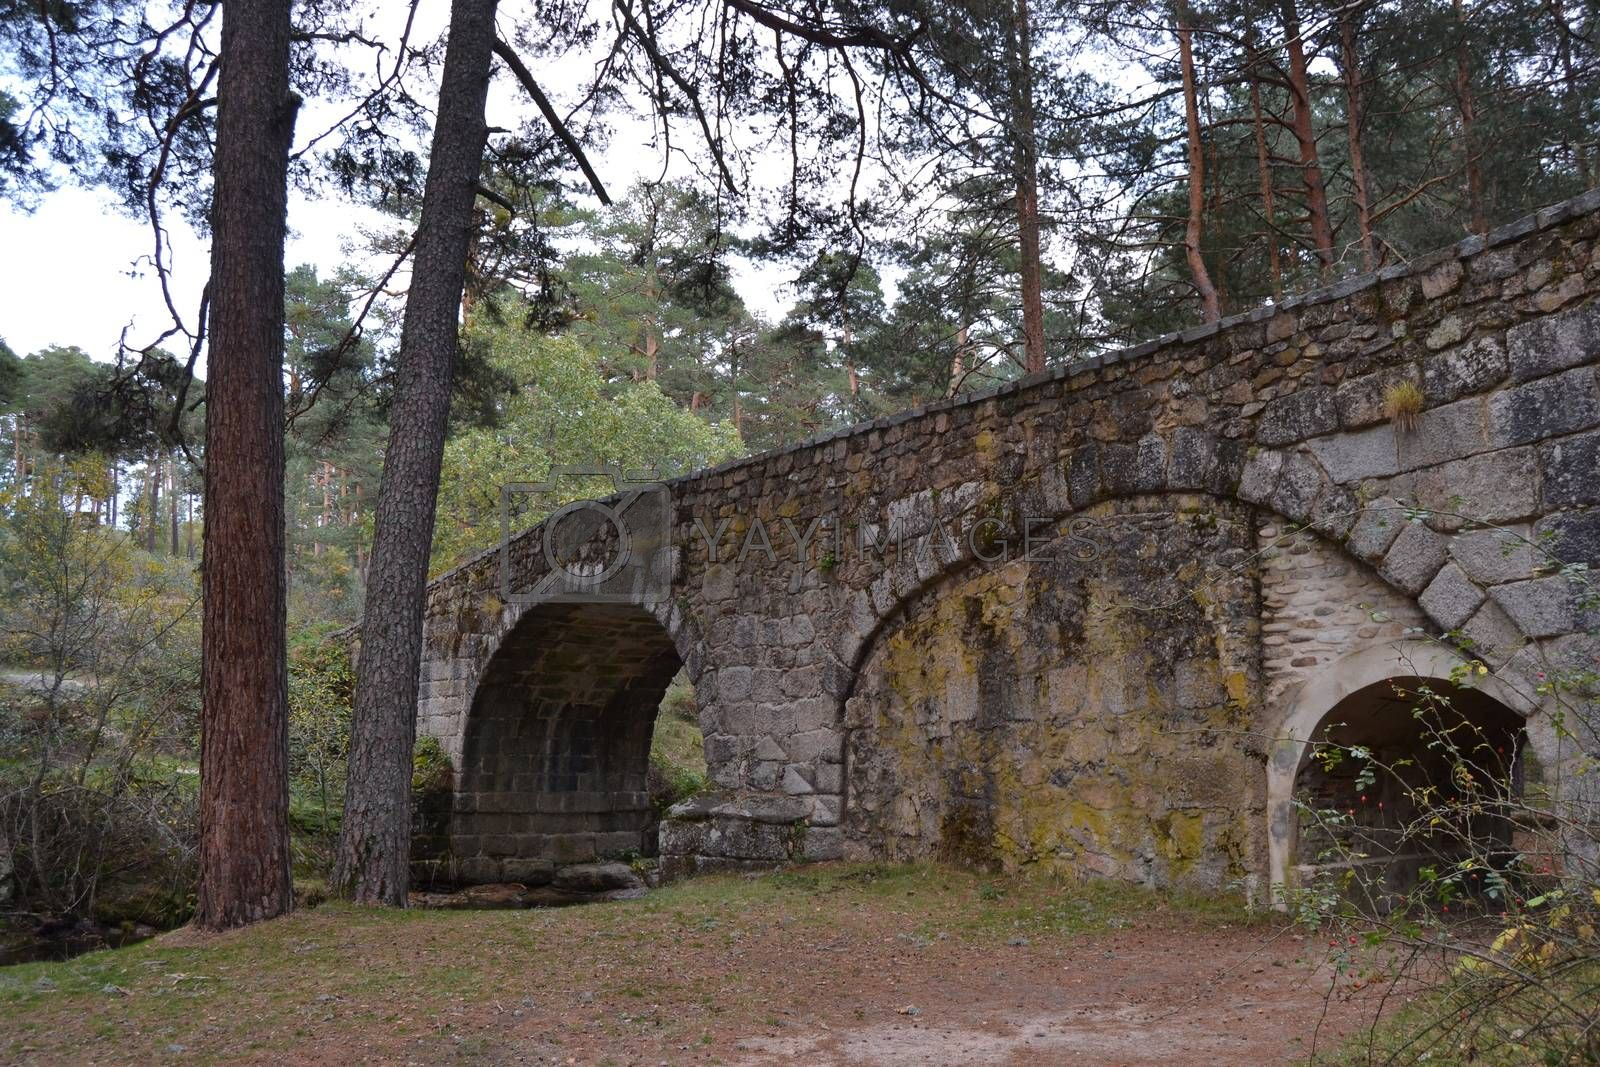 Old bridge made of stone on a forest path